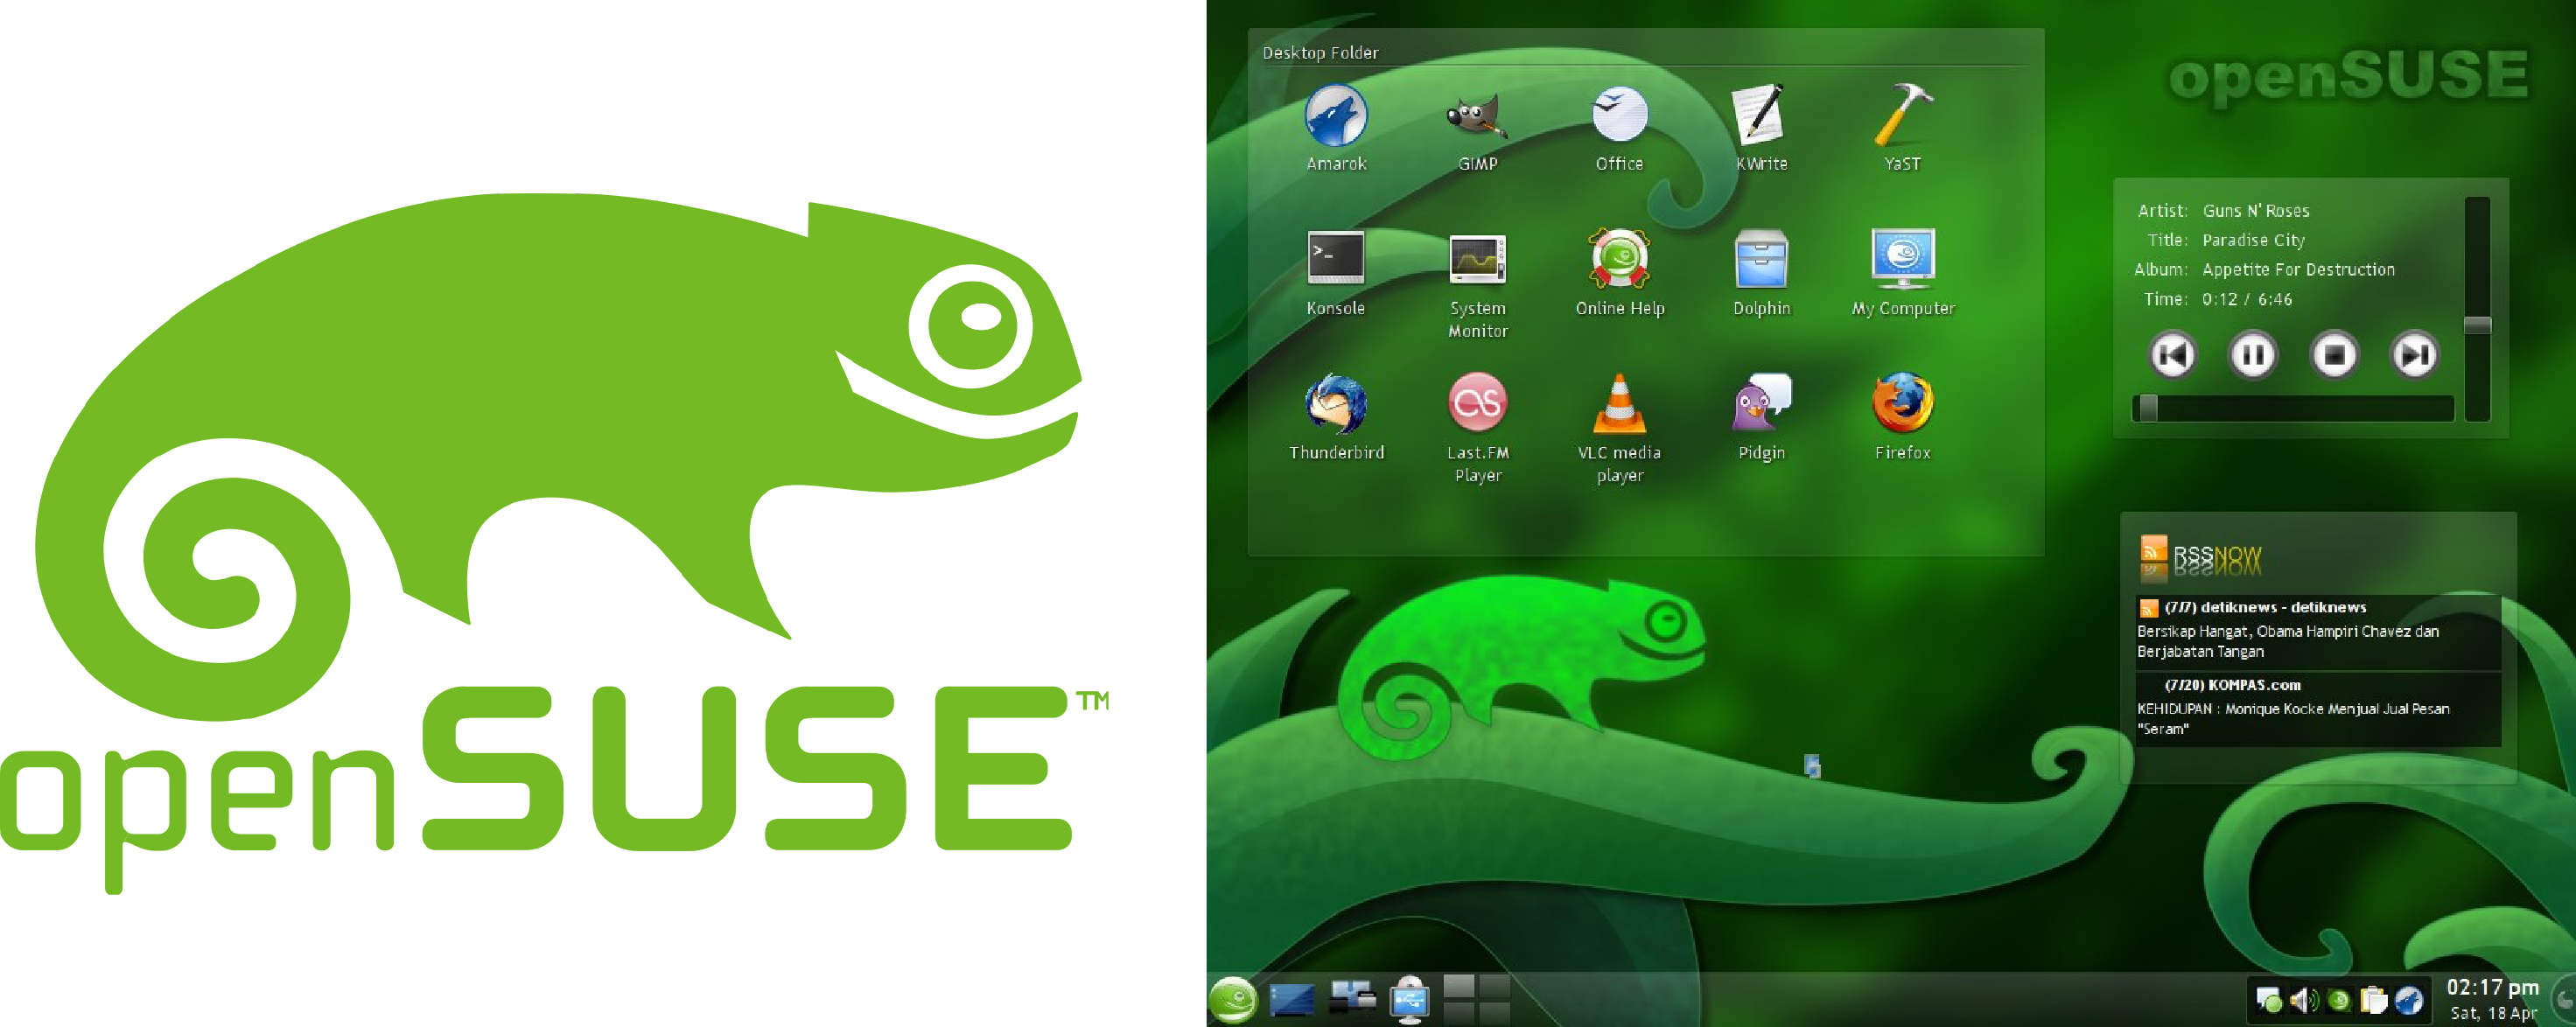 OpenSuSE logo and desktop.